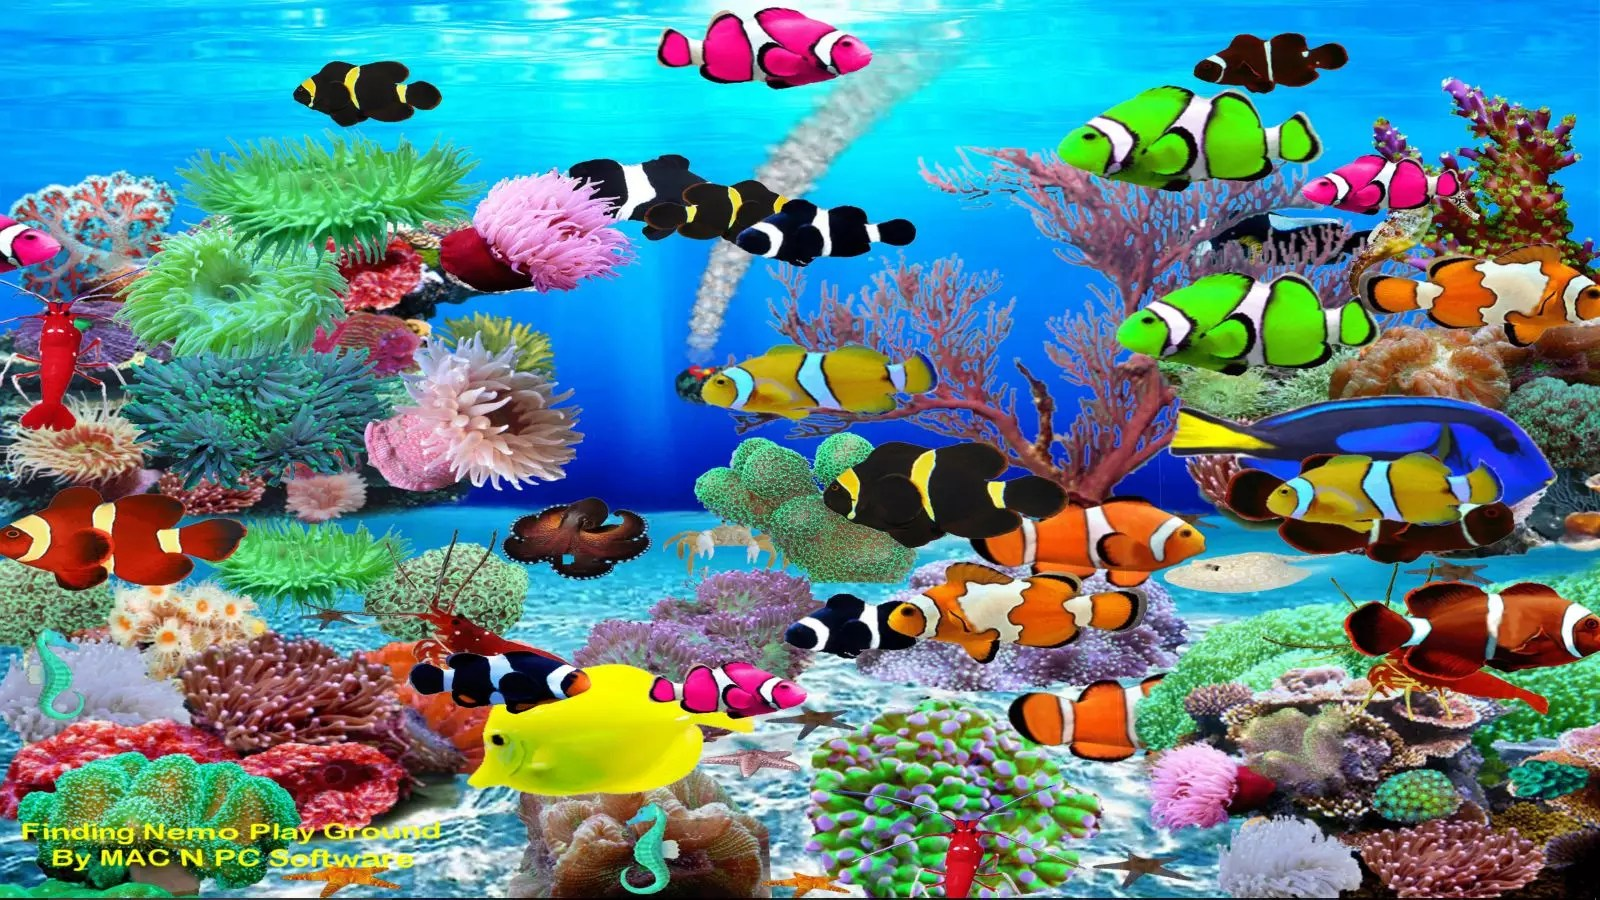 Snow Wallpaper Iphone 5 Finding Nemo Aquarium Download